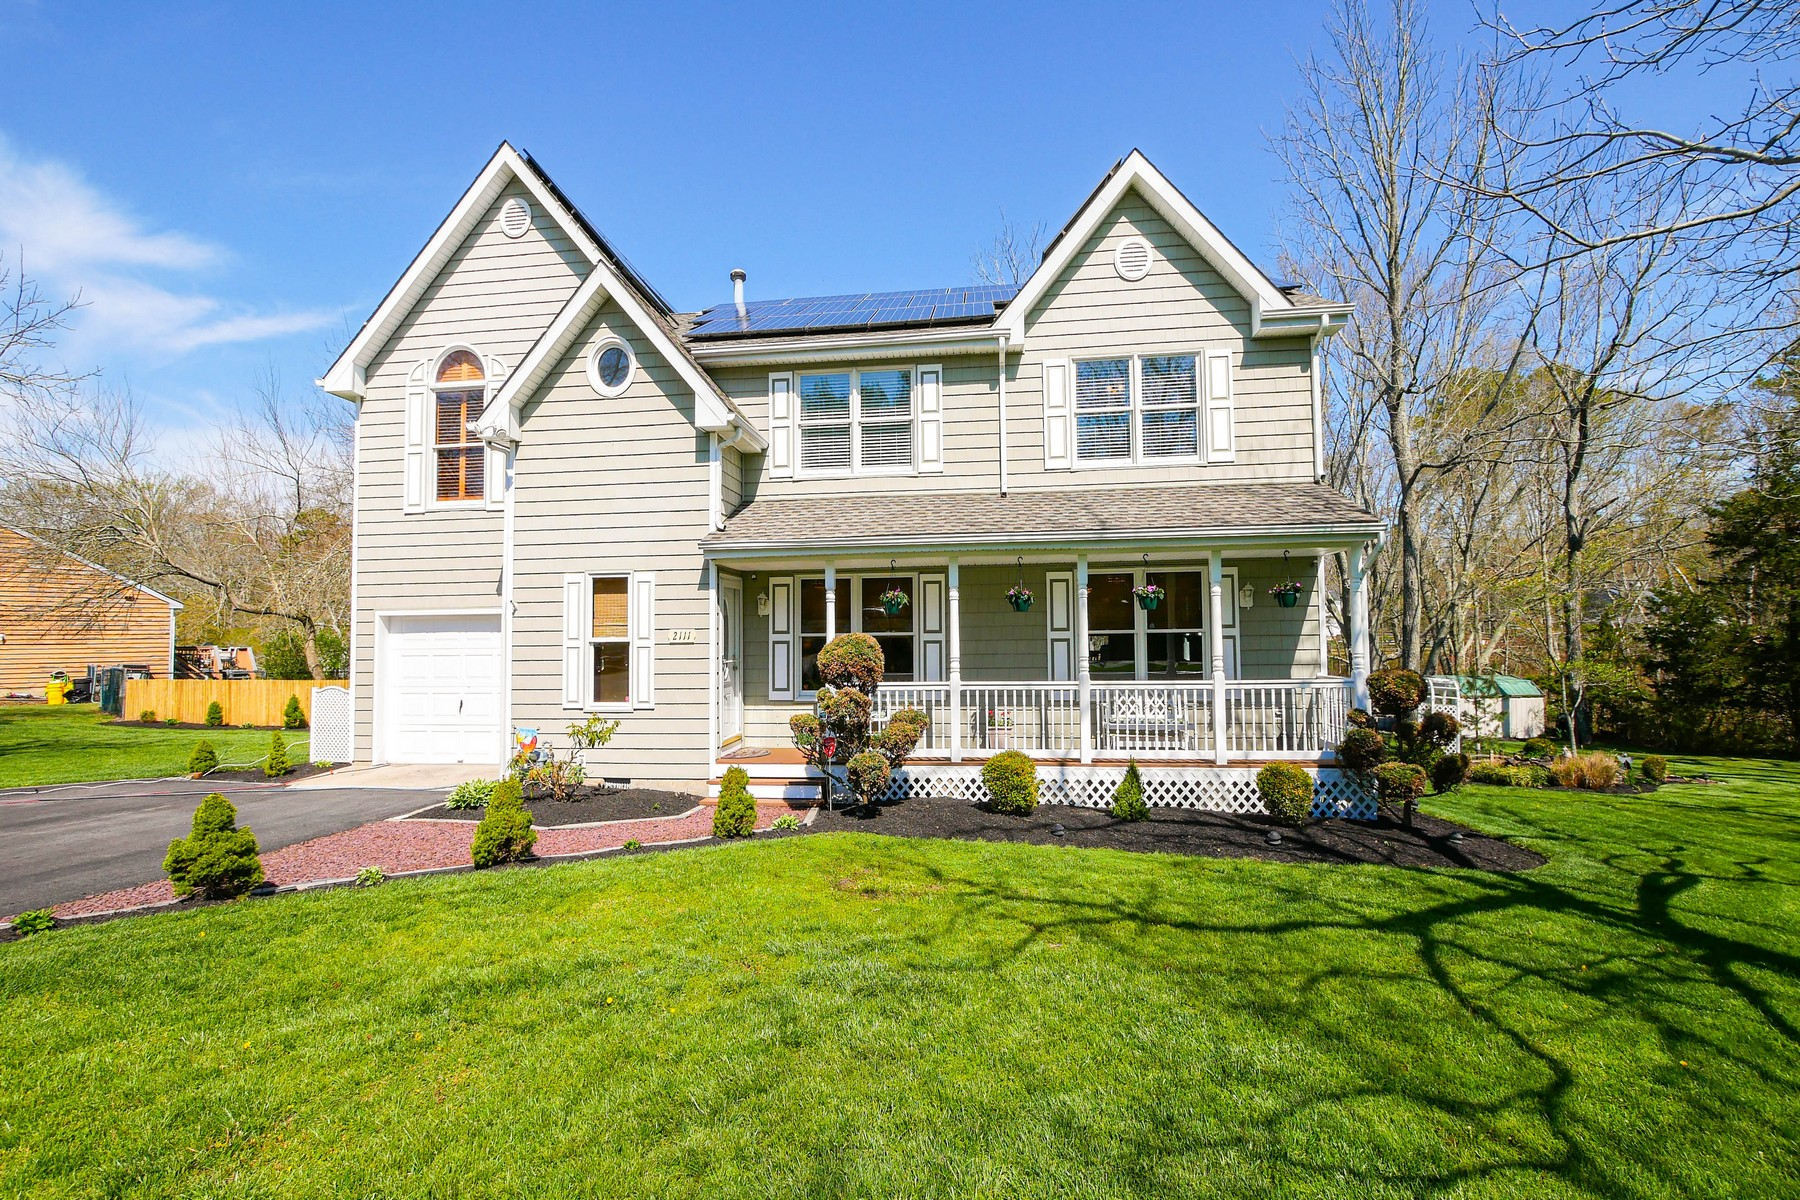 Single Family Homes for Sale at Exclusive Single Family Home 2111 N Route 9 Clermont, New Jersey 08210 United States